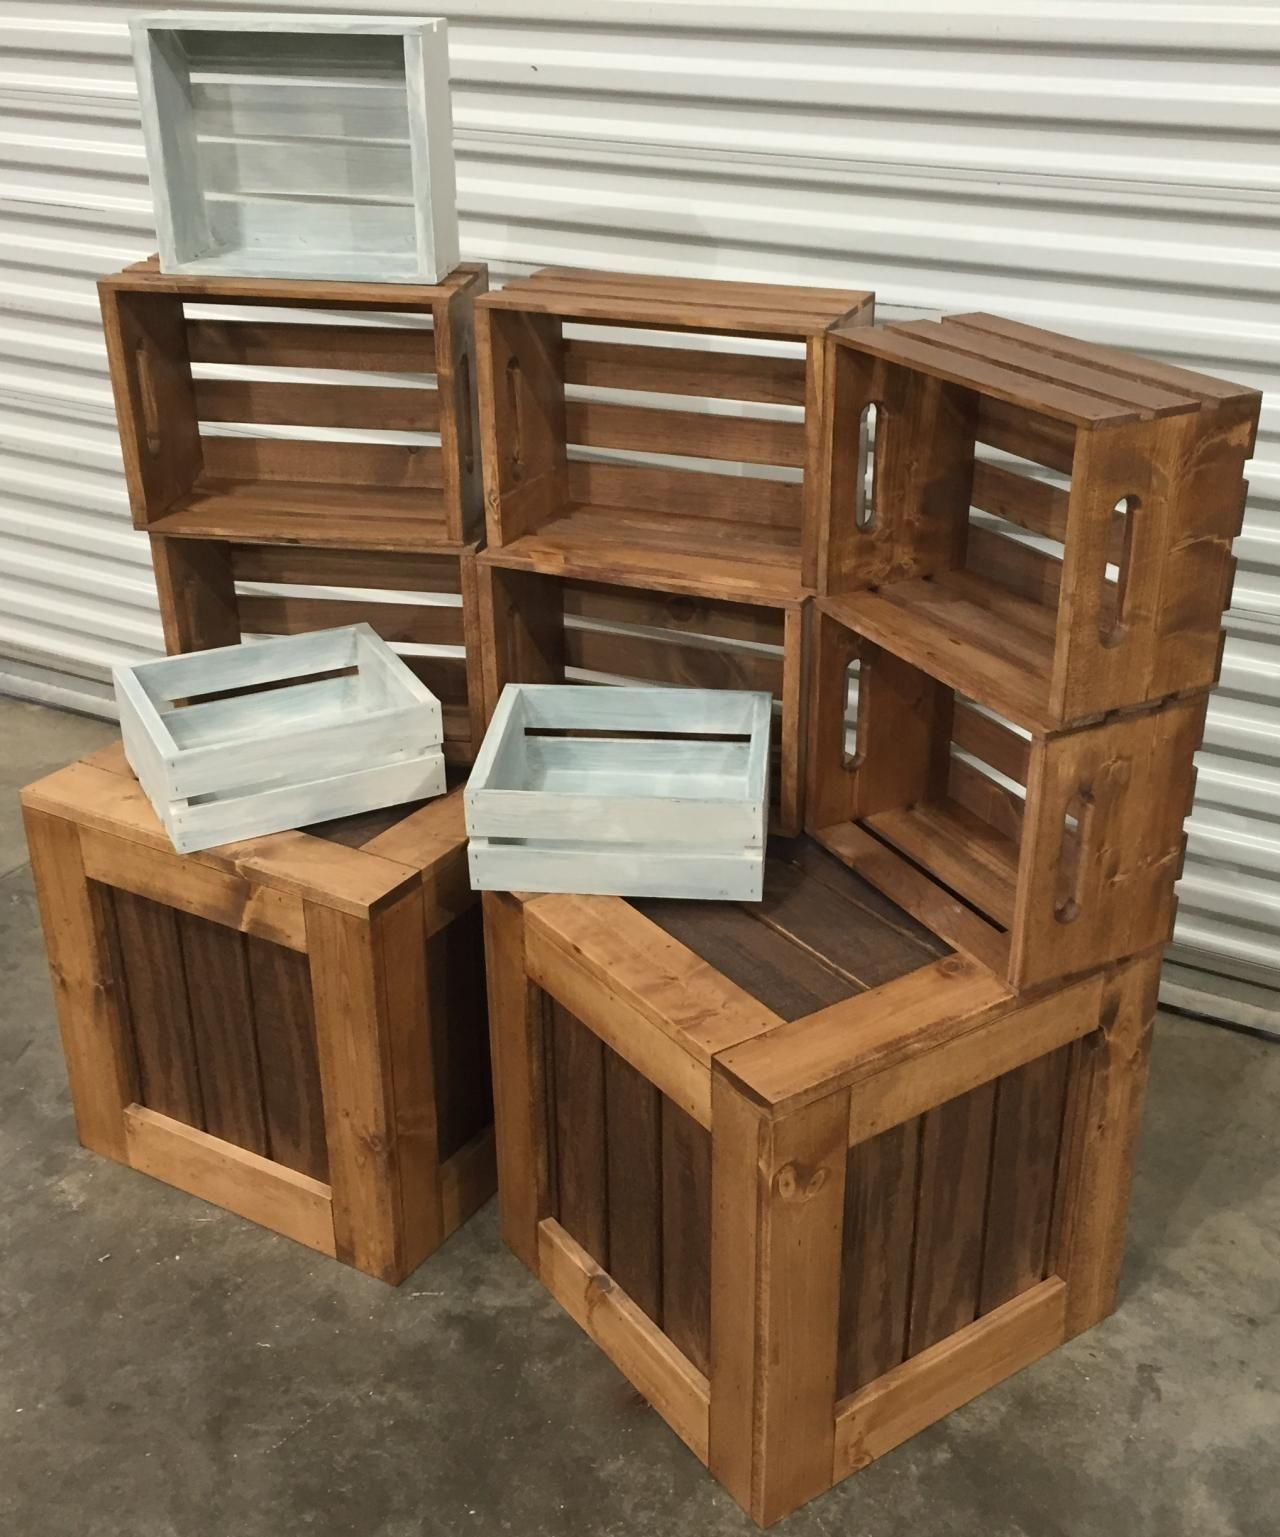 Imagining Your Interior Store With Rustic Boutique Display